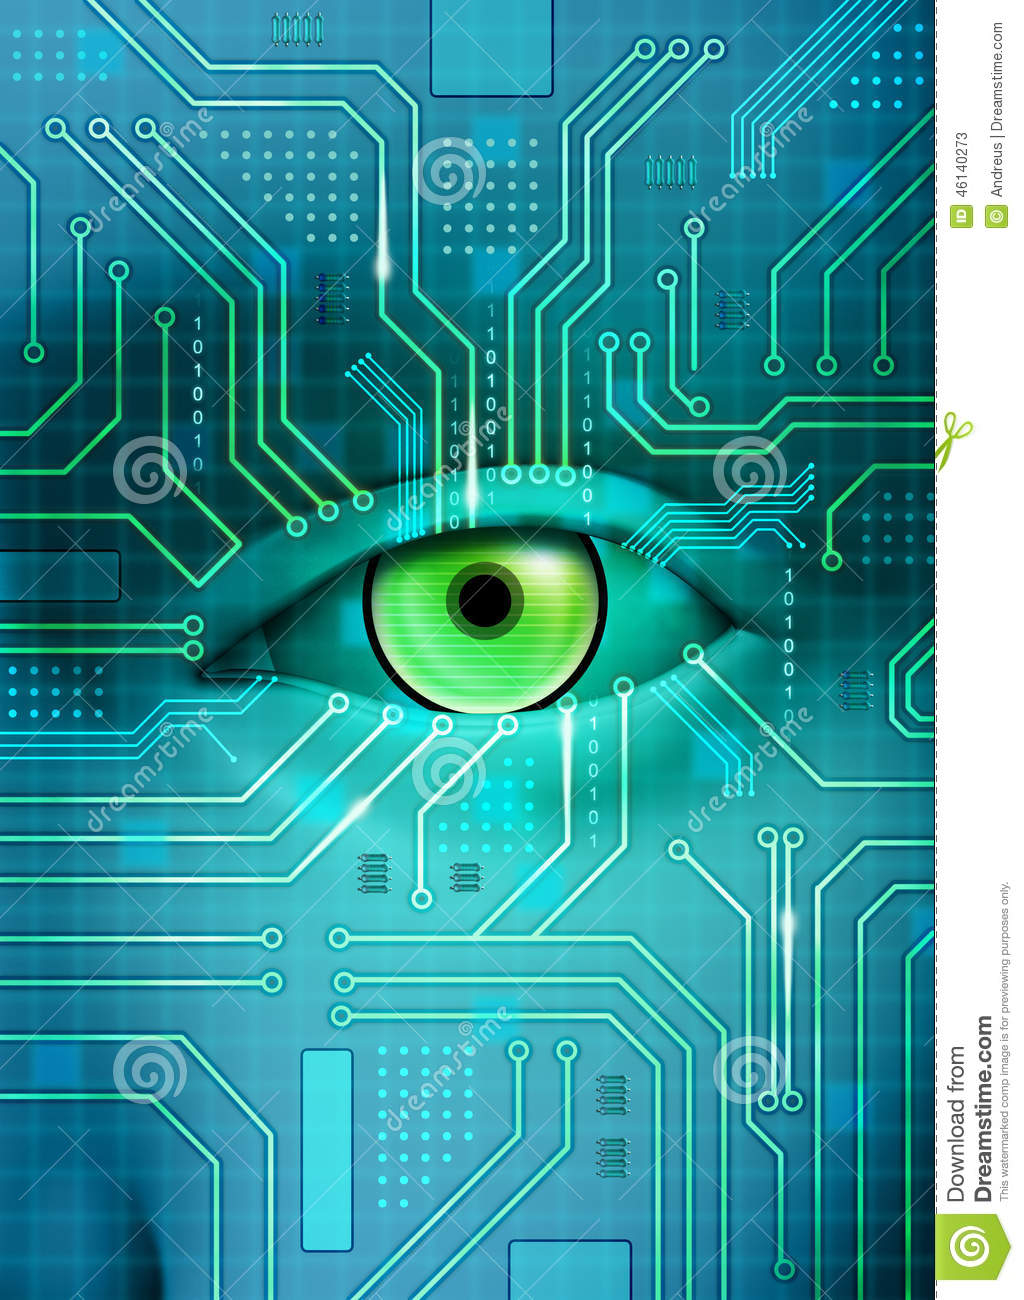 Circuit Board Eye Best Secret Wiring Diagram Pics Photos Desktop Wallpapers Printed Pictures Electronic Stock Illustration Of Chip 46140273 Rh Dreamstime Com